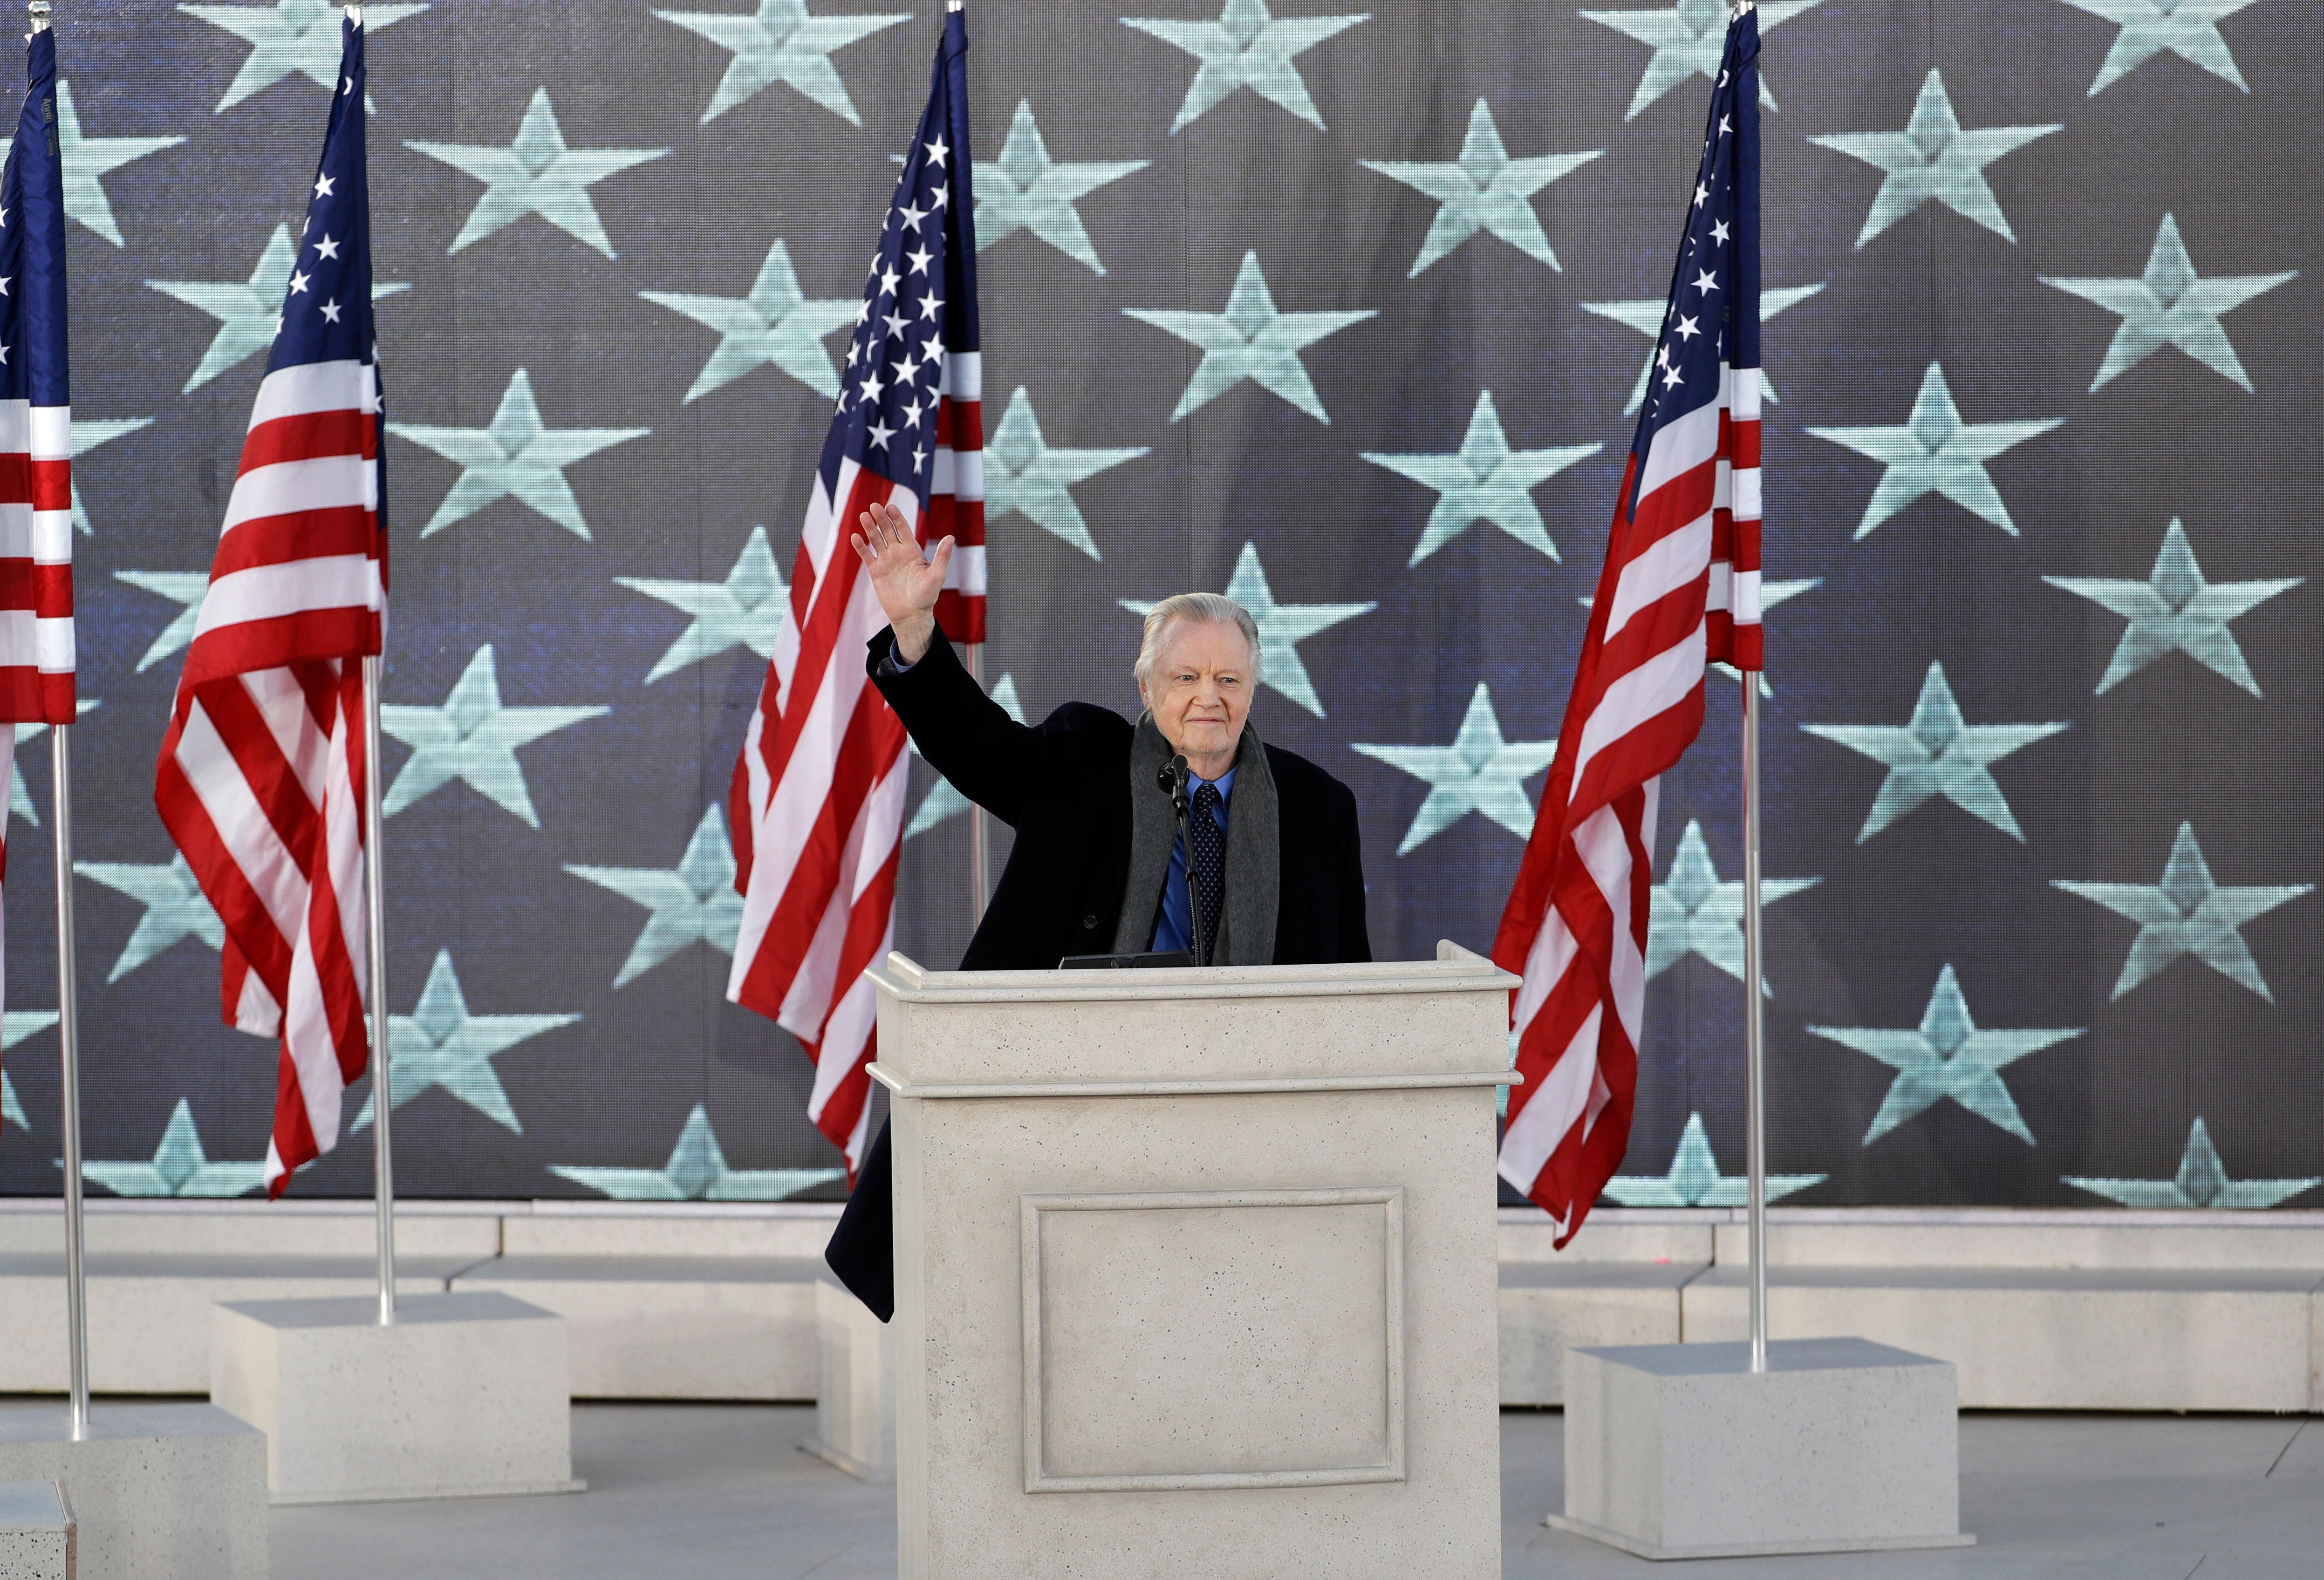 """Jon Voight waves as he appears during a pre-Inaugural """"Make America Great Again! Welcome Celebration"""" at the Lincoln Memorial in Washington, Thursday, Jan. 19, 2017. (AP Photo/David J. Phillip)"""